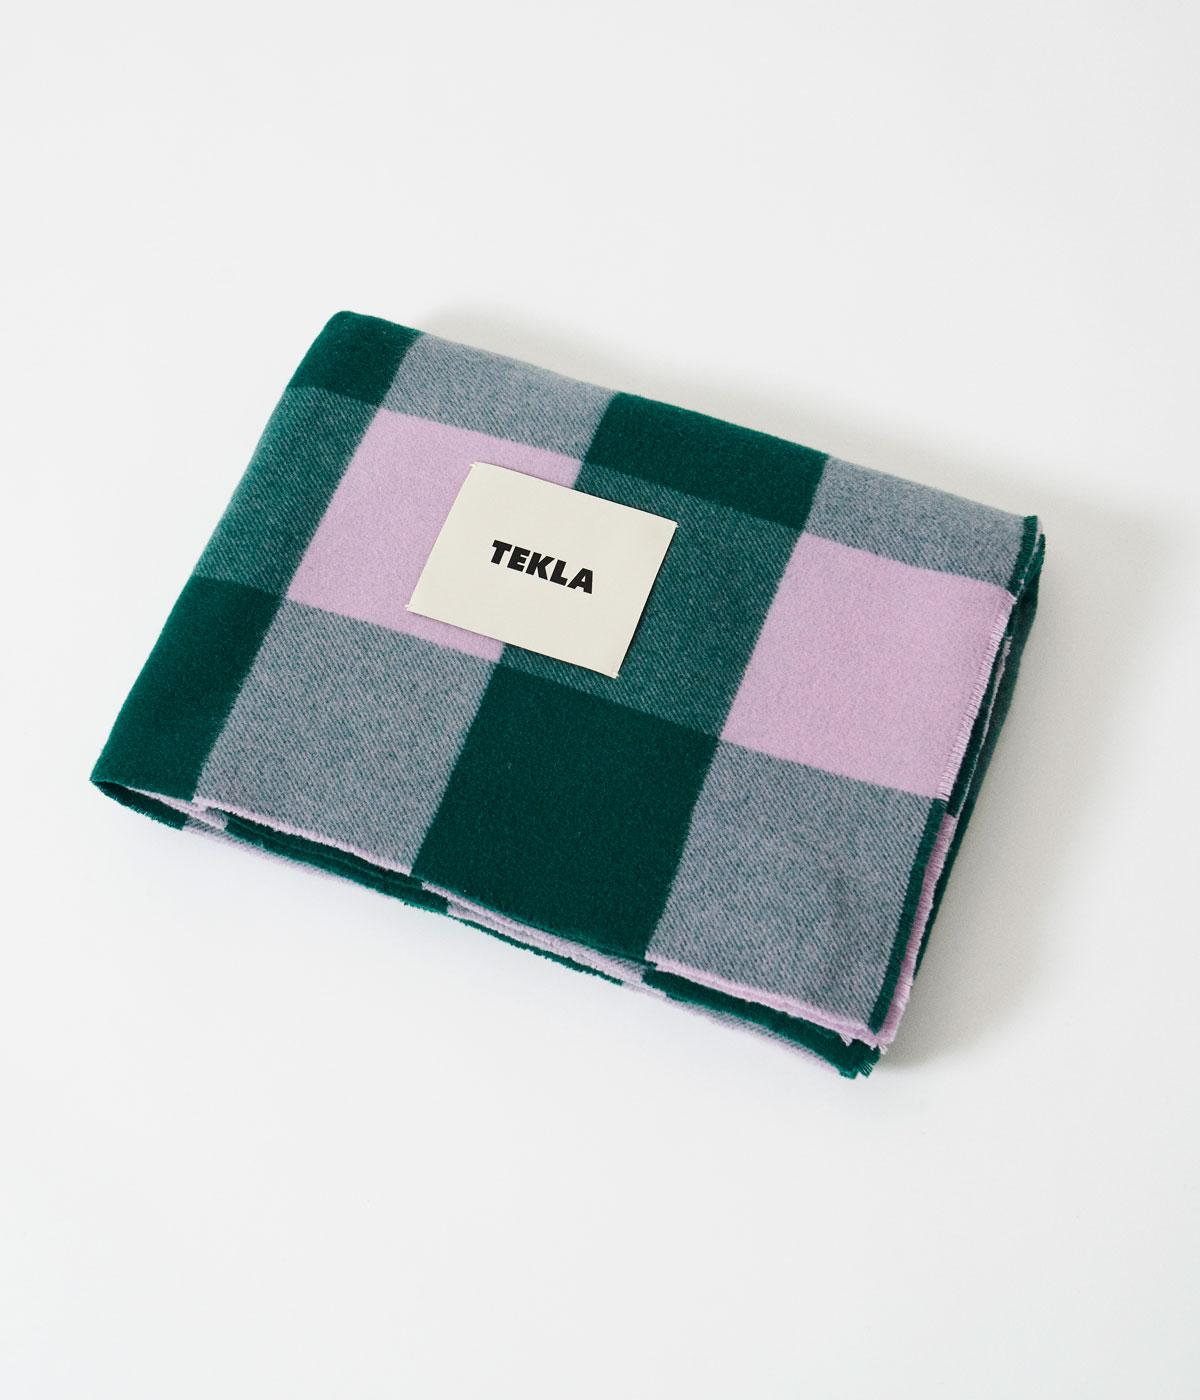 Tekla picnic blanket folded up in green and purple